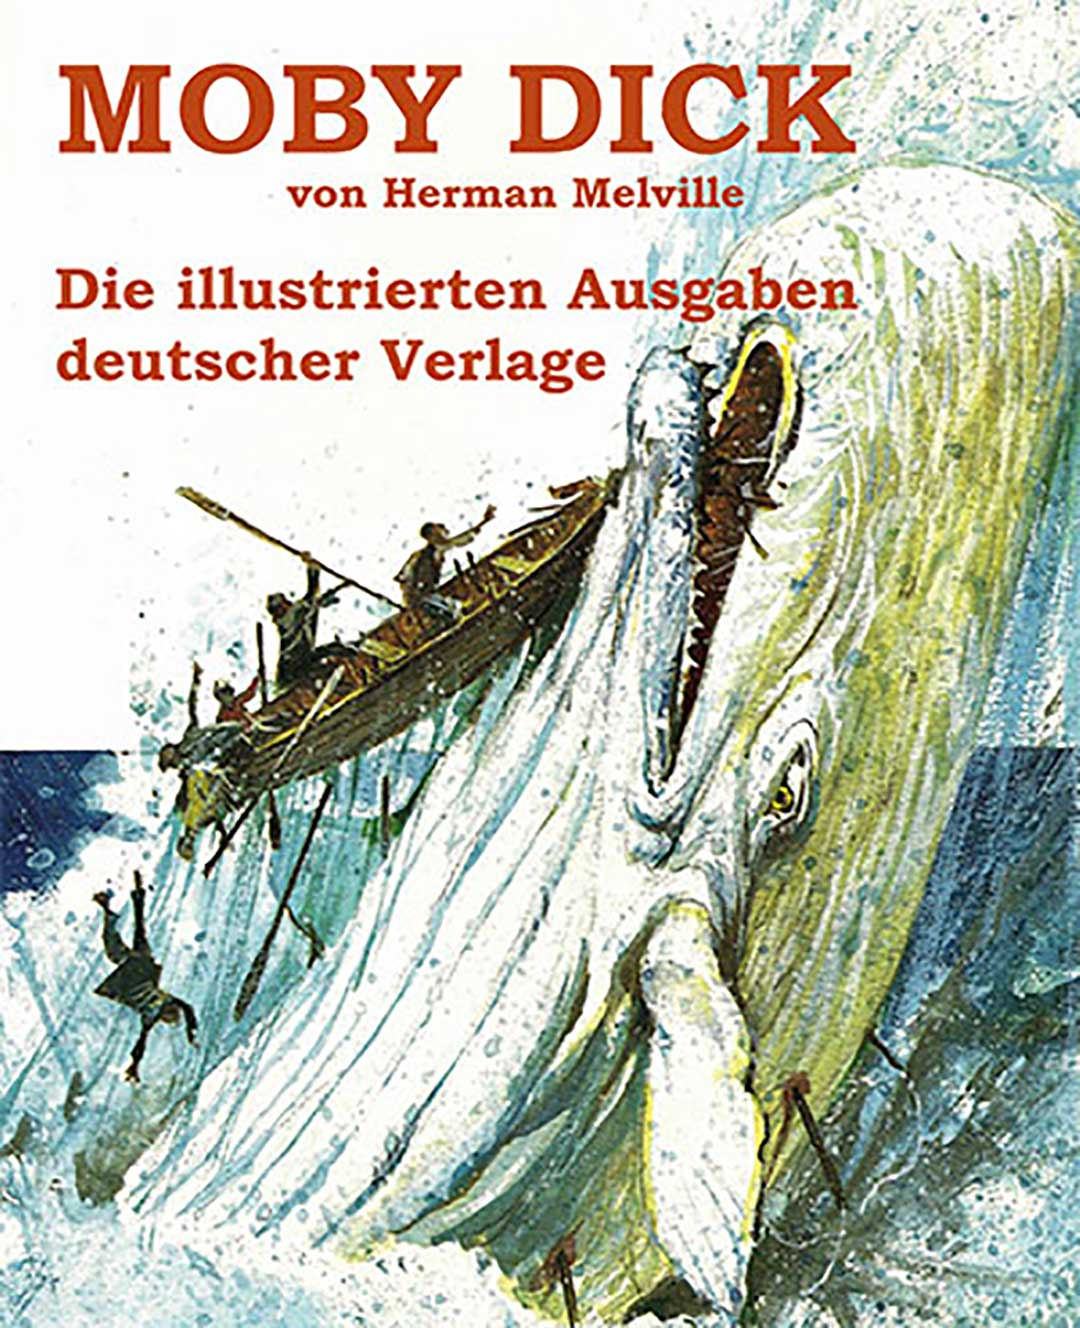 Herman melville and moby dick stamps — 5